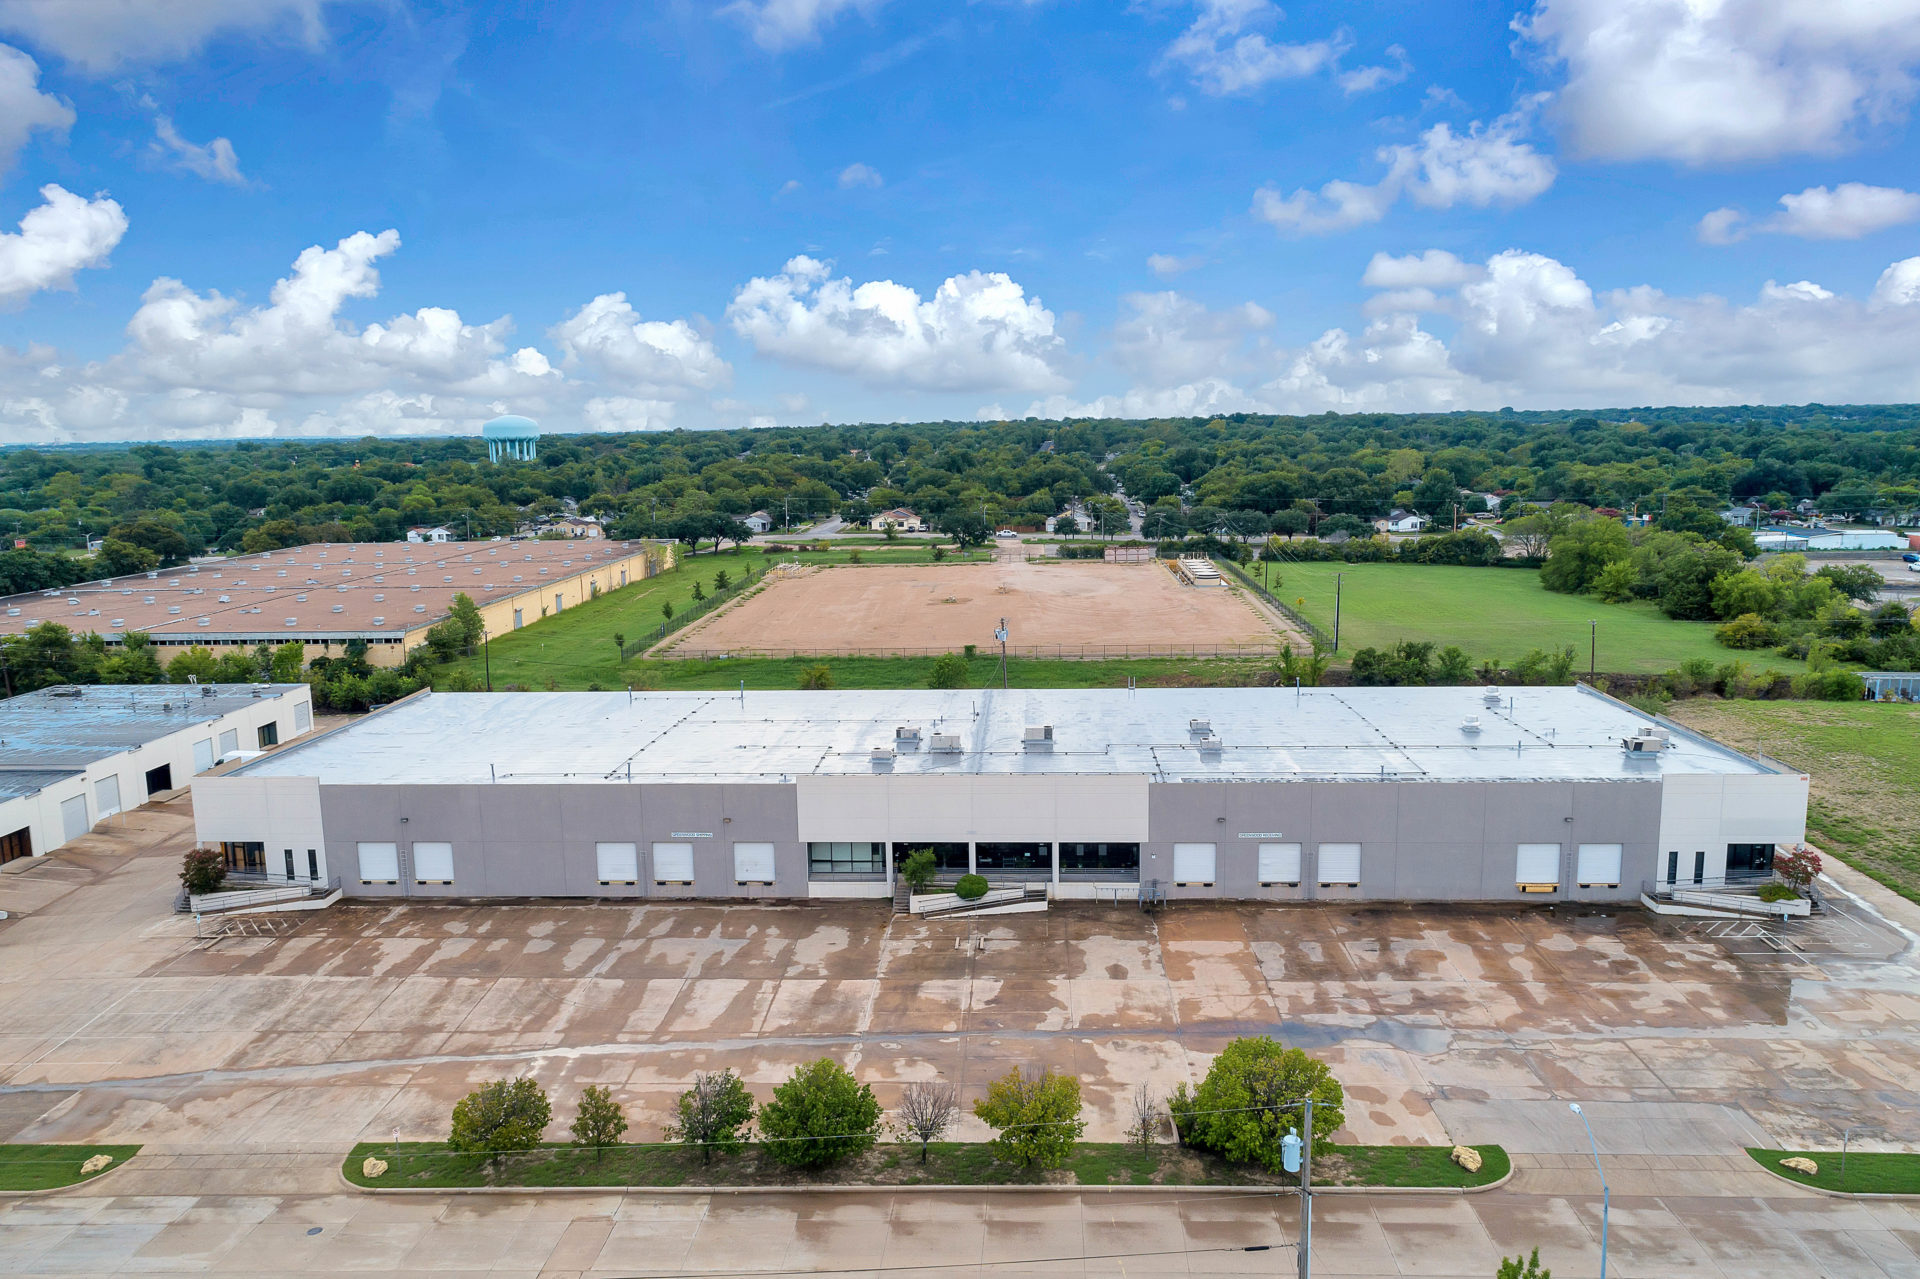 Aerial view of one building in the Suffolk Business Park with grey and white siding, entrance ramps, and loading docks